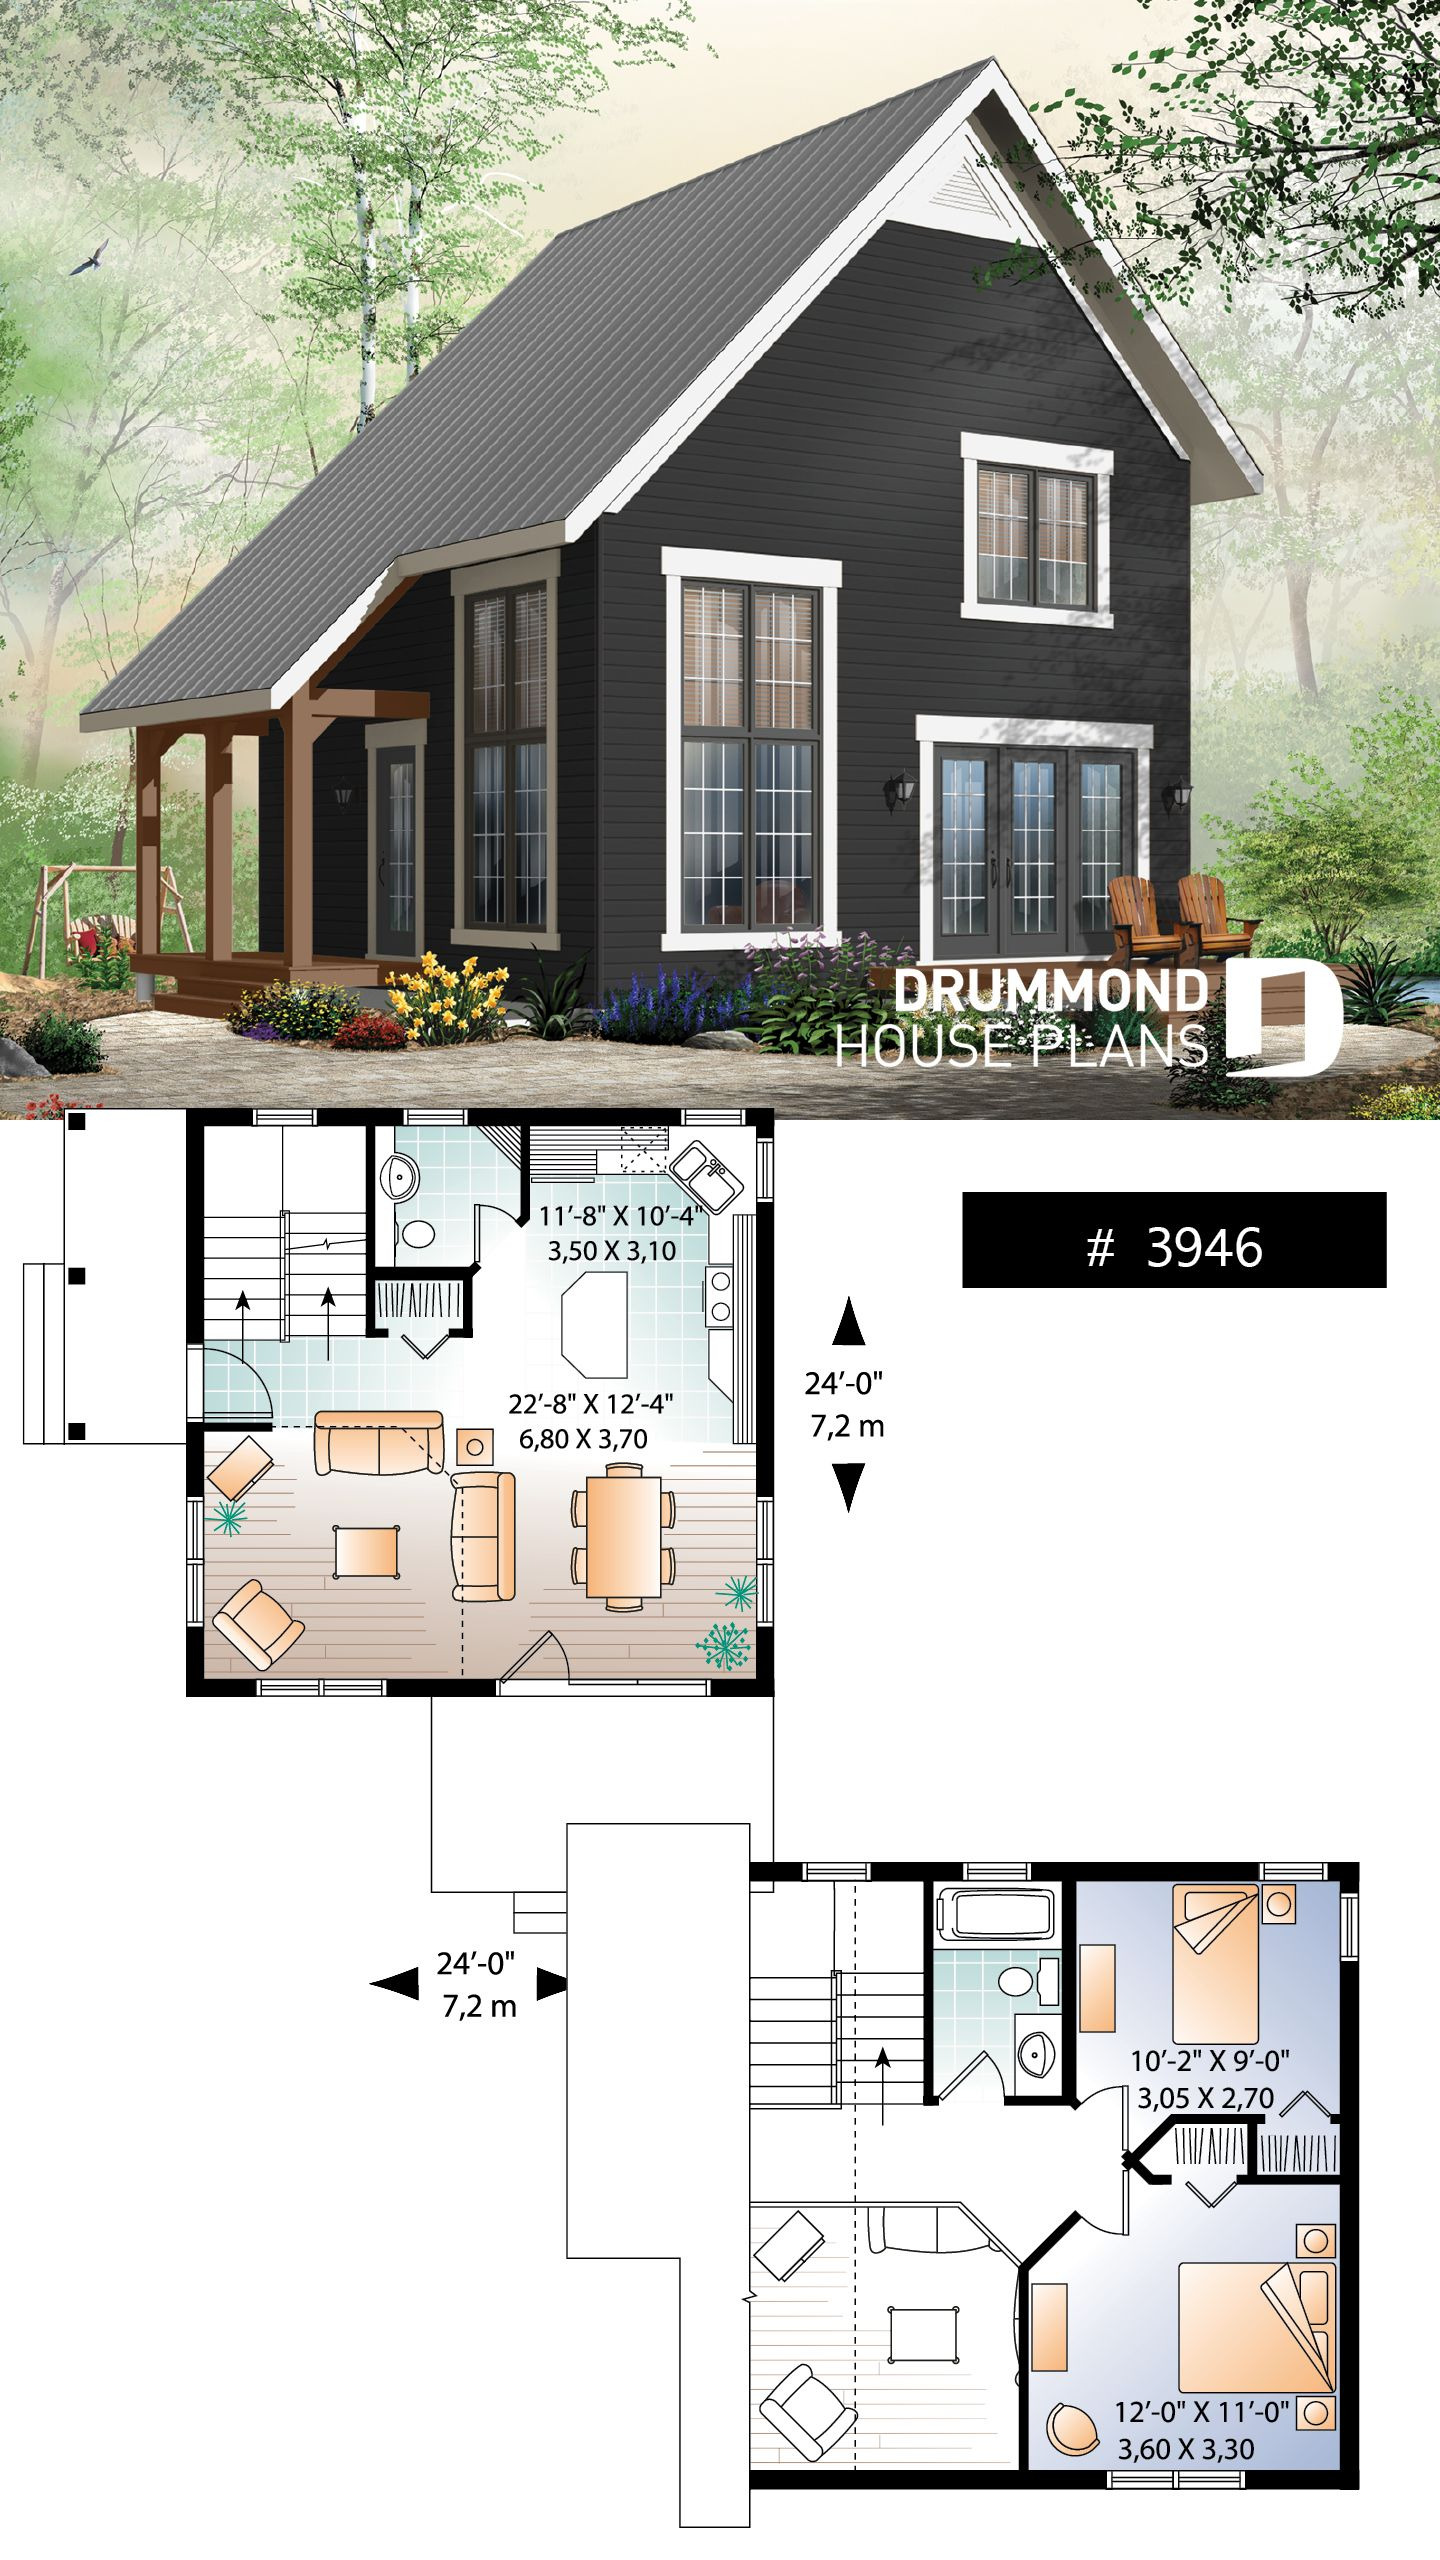 Small Low Cost House Plans Best Of House Plan Willowgate No 3946 with Images